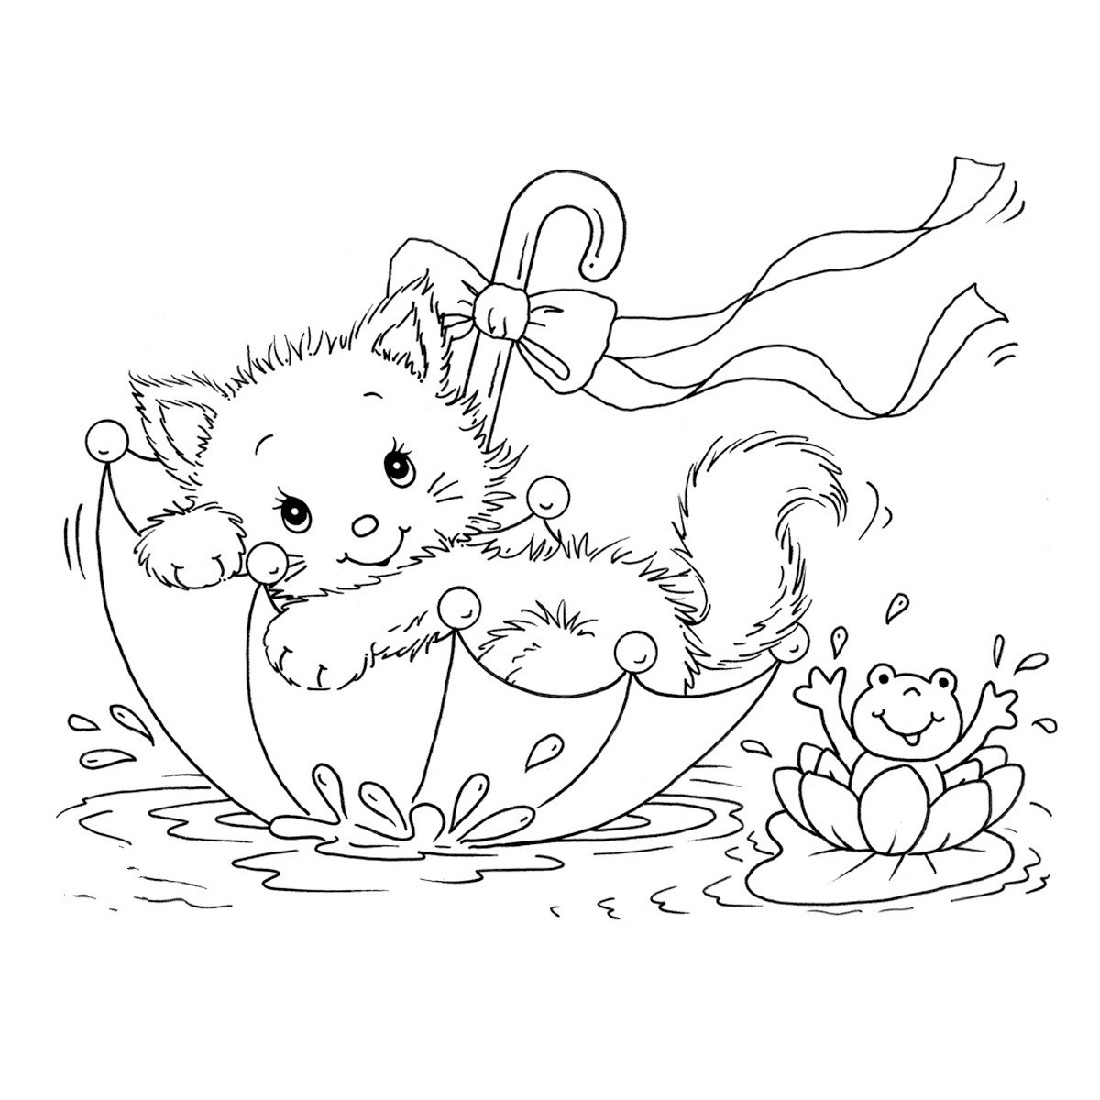 Printable Kitten Coloring Pages Cute